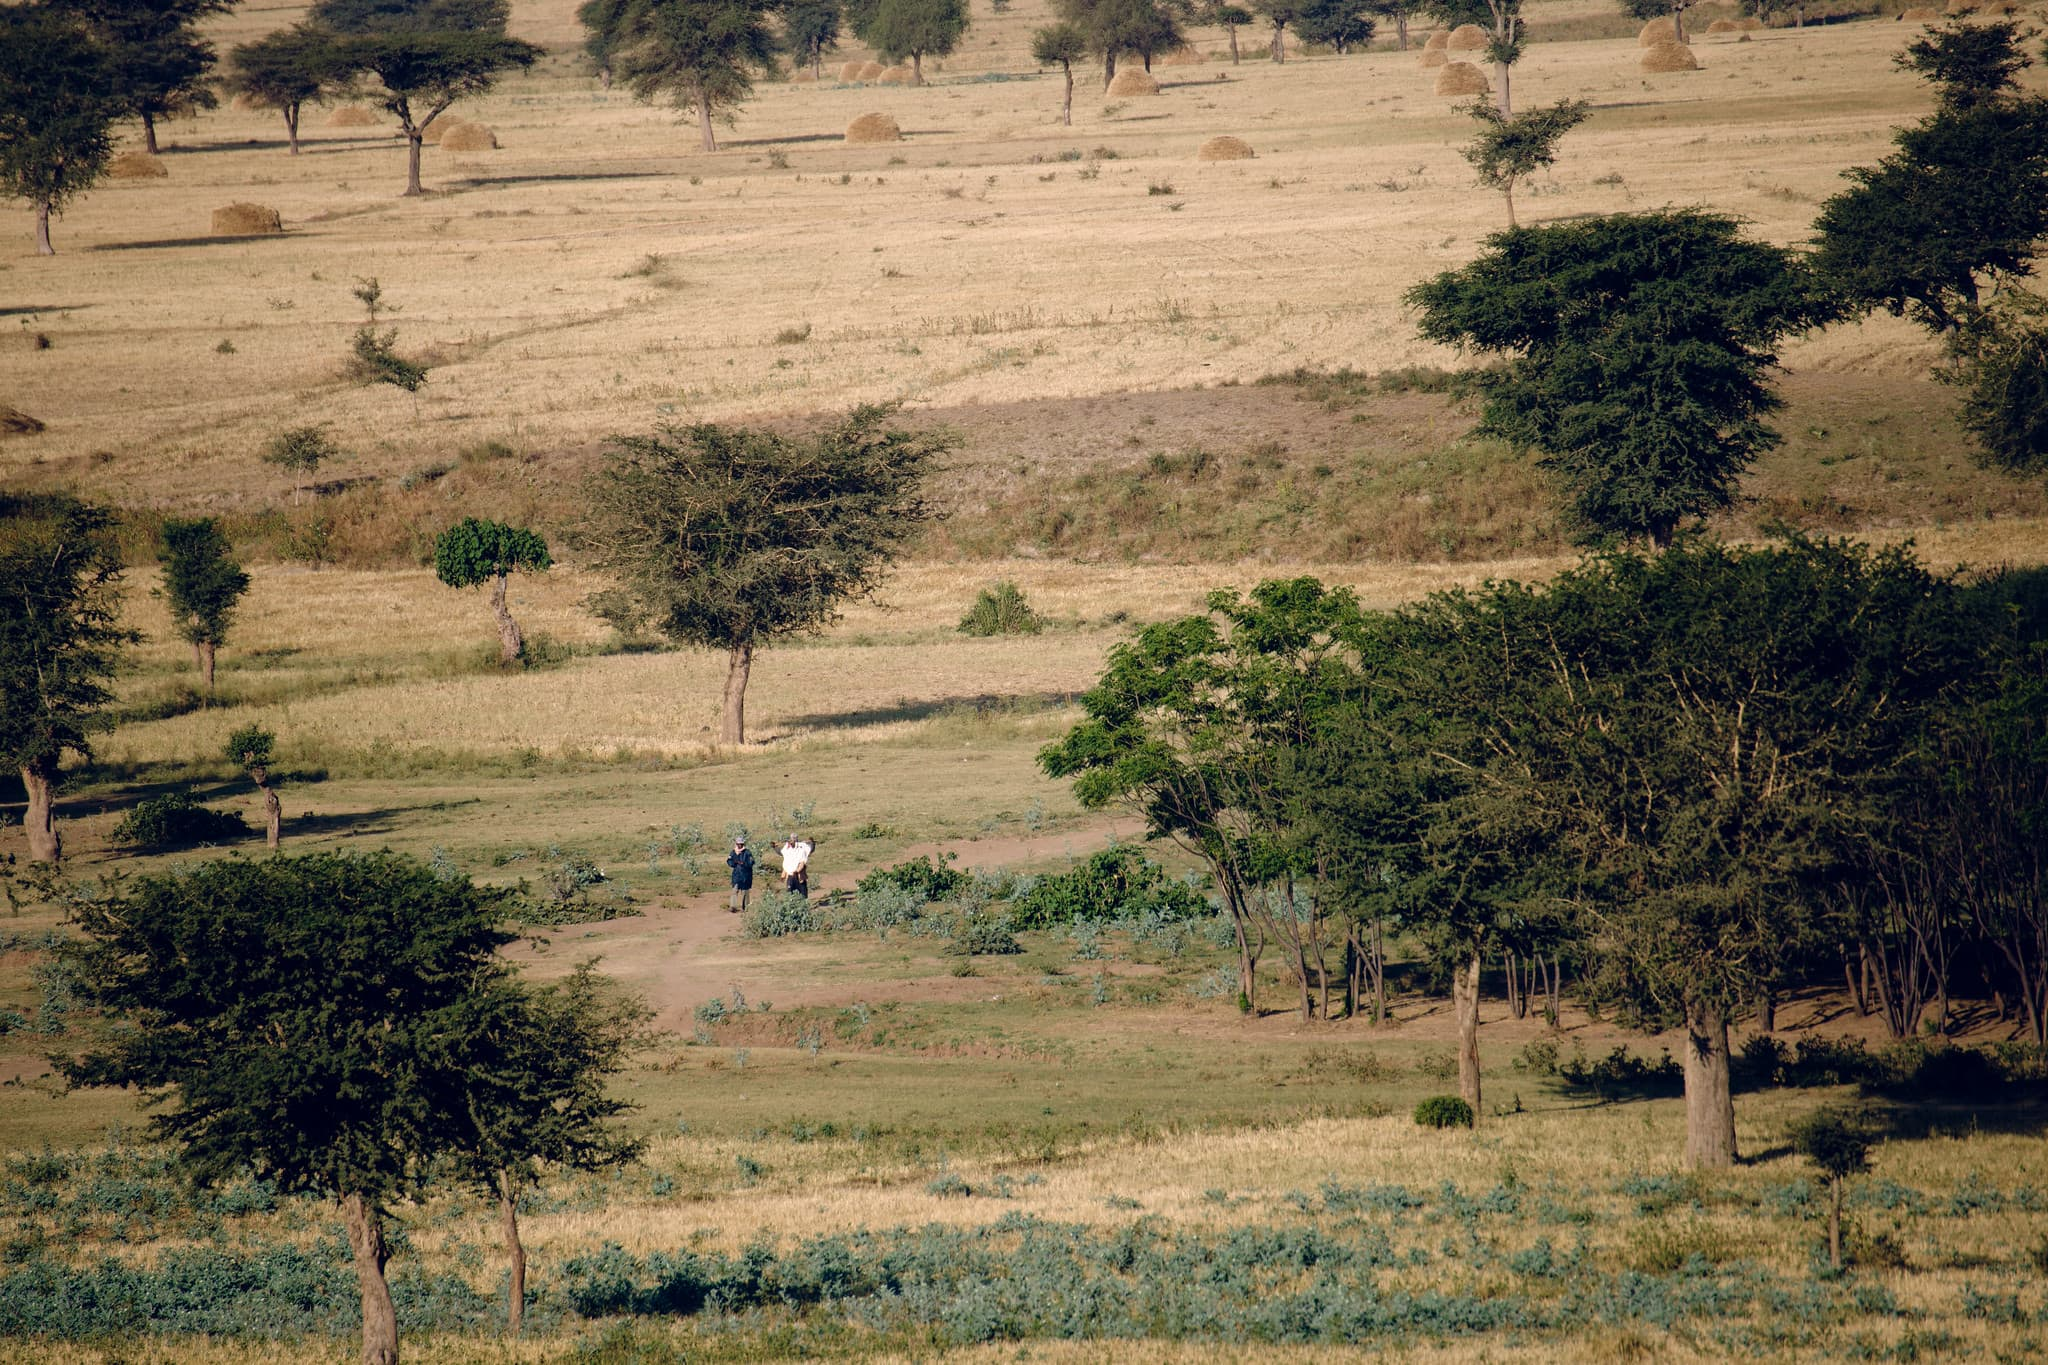 ethiopia, drylands, dry forests, deforestation